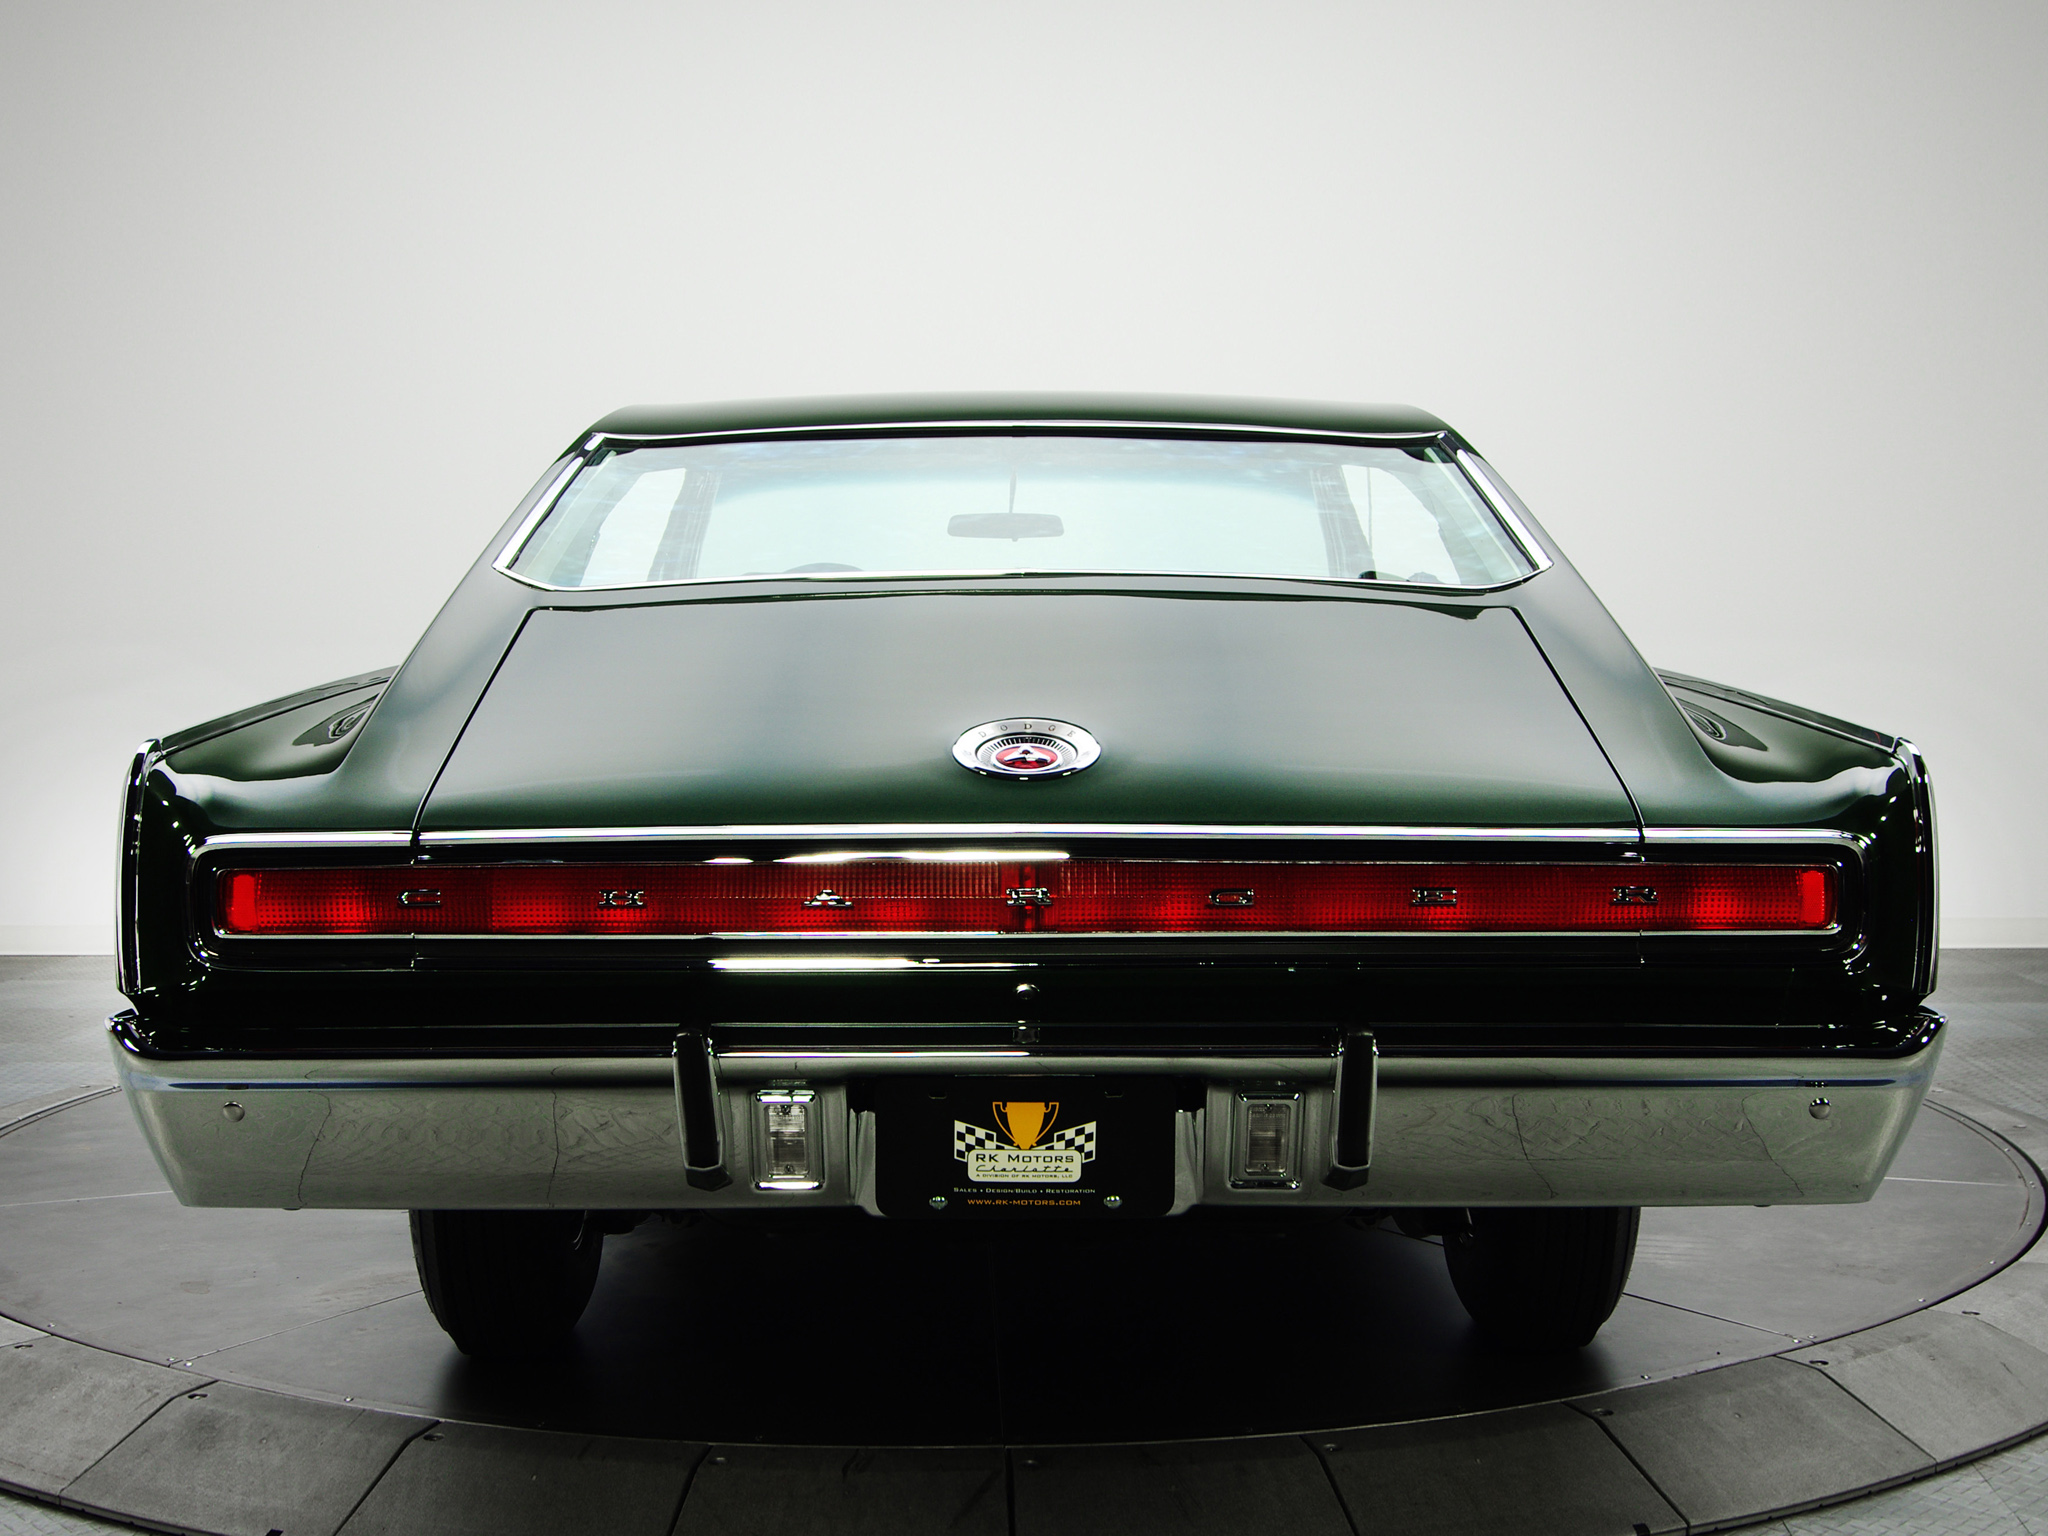 1967 Dodge Charger R-T 426 Hemi muscle classic d wallpaper | 2048x1536 ...